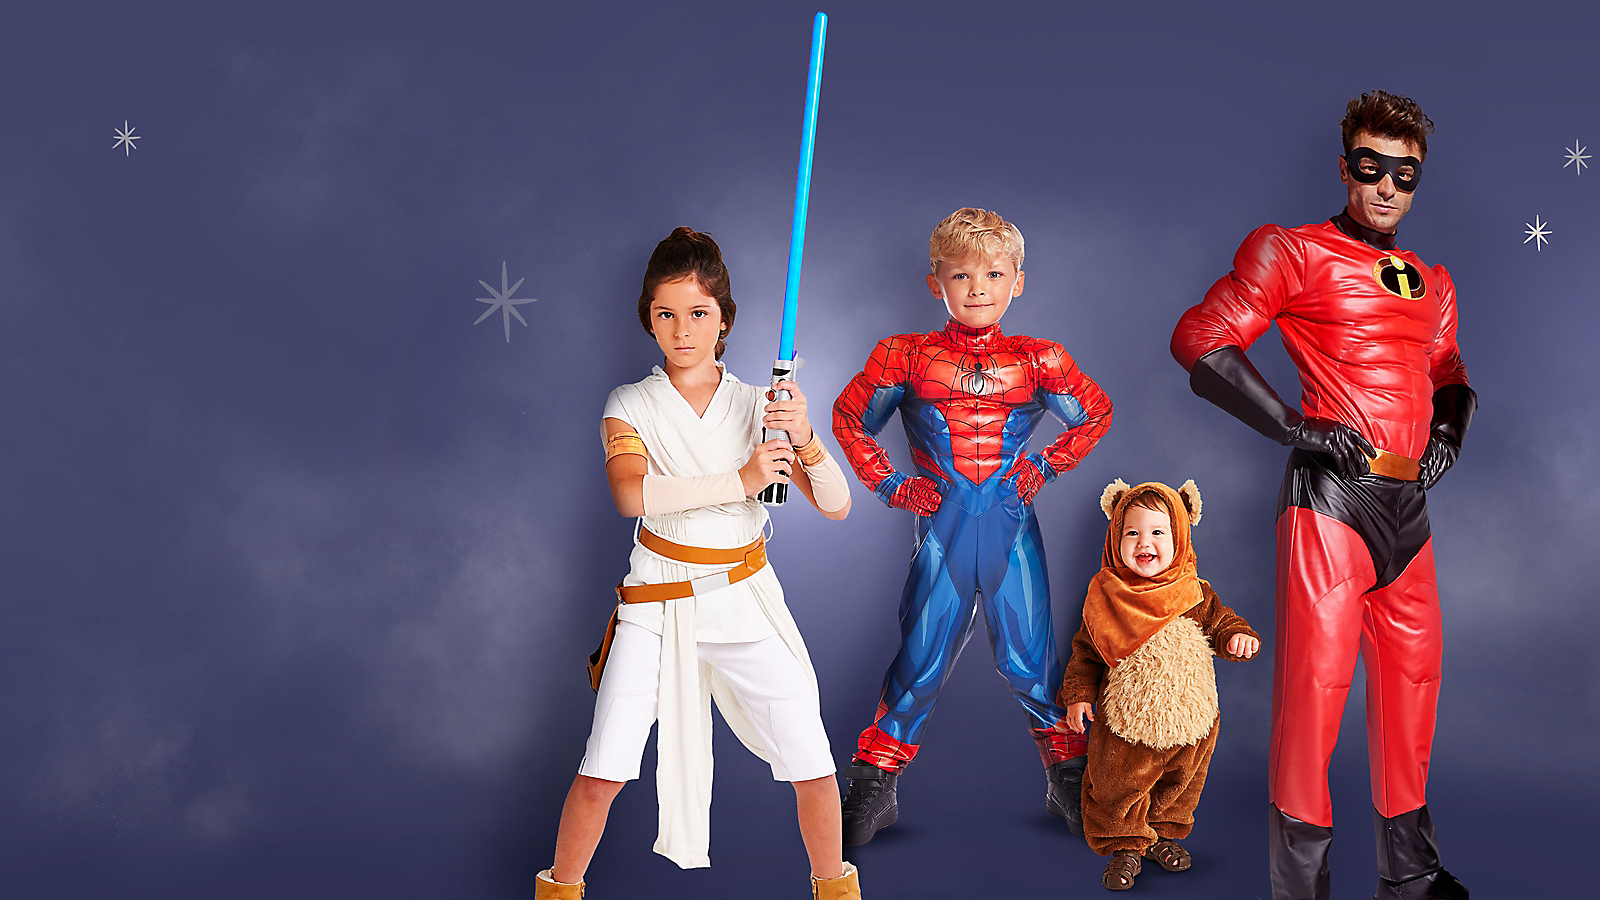 Girl in Rey costume with lightsaber Boy in Spider-Man costume Baby in Ewok costume Man in Mr. Incredible costume